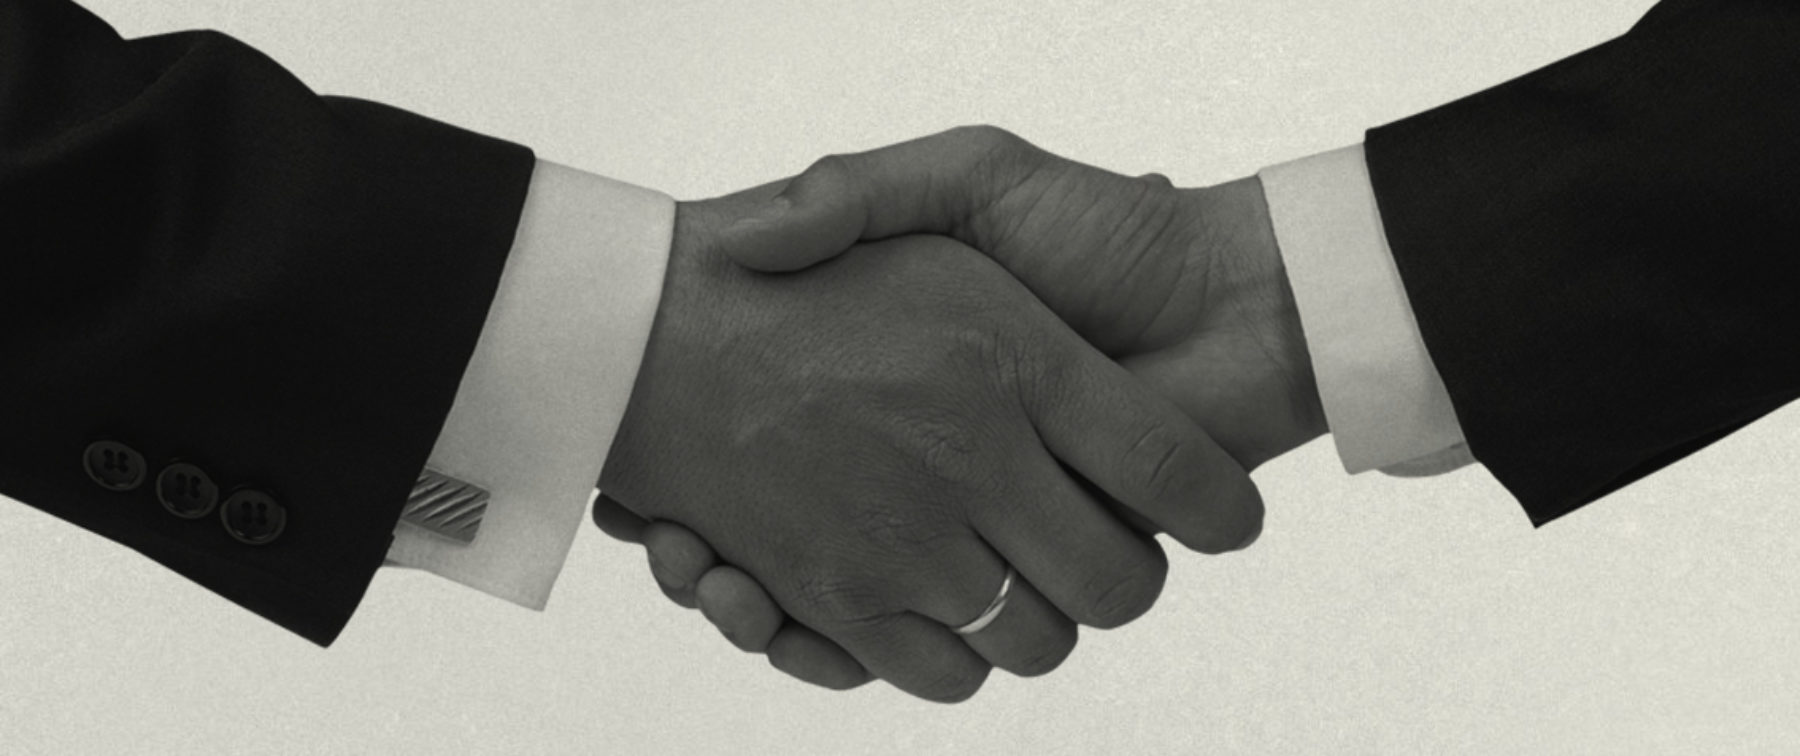 The best handshake alternatives for these troubling times